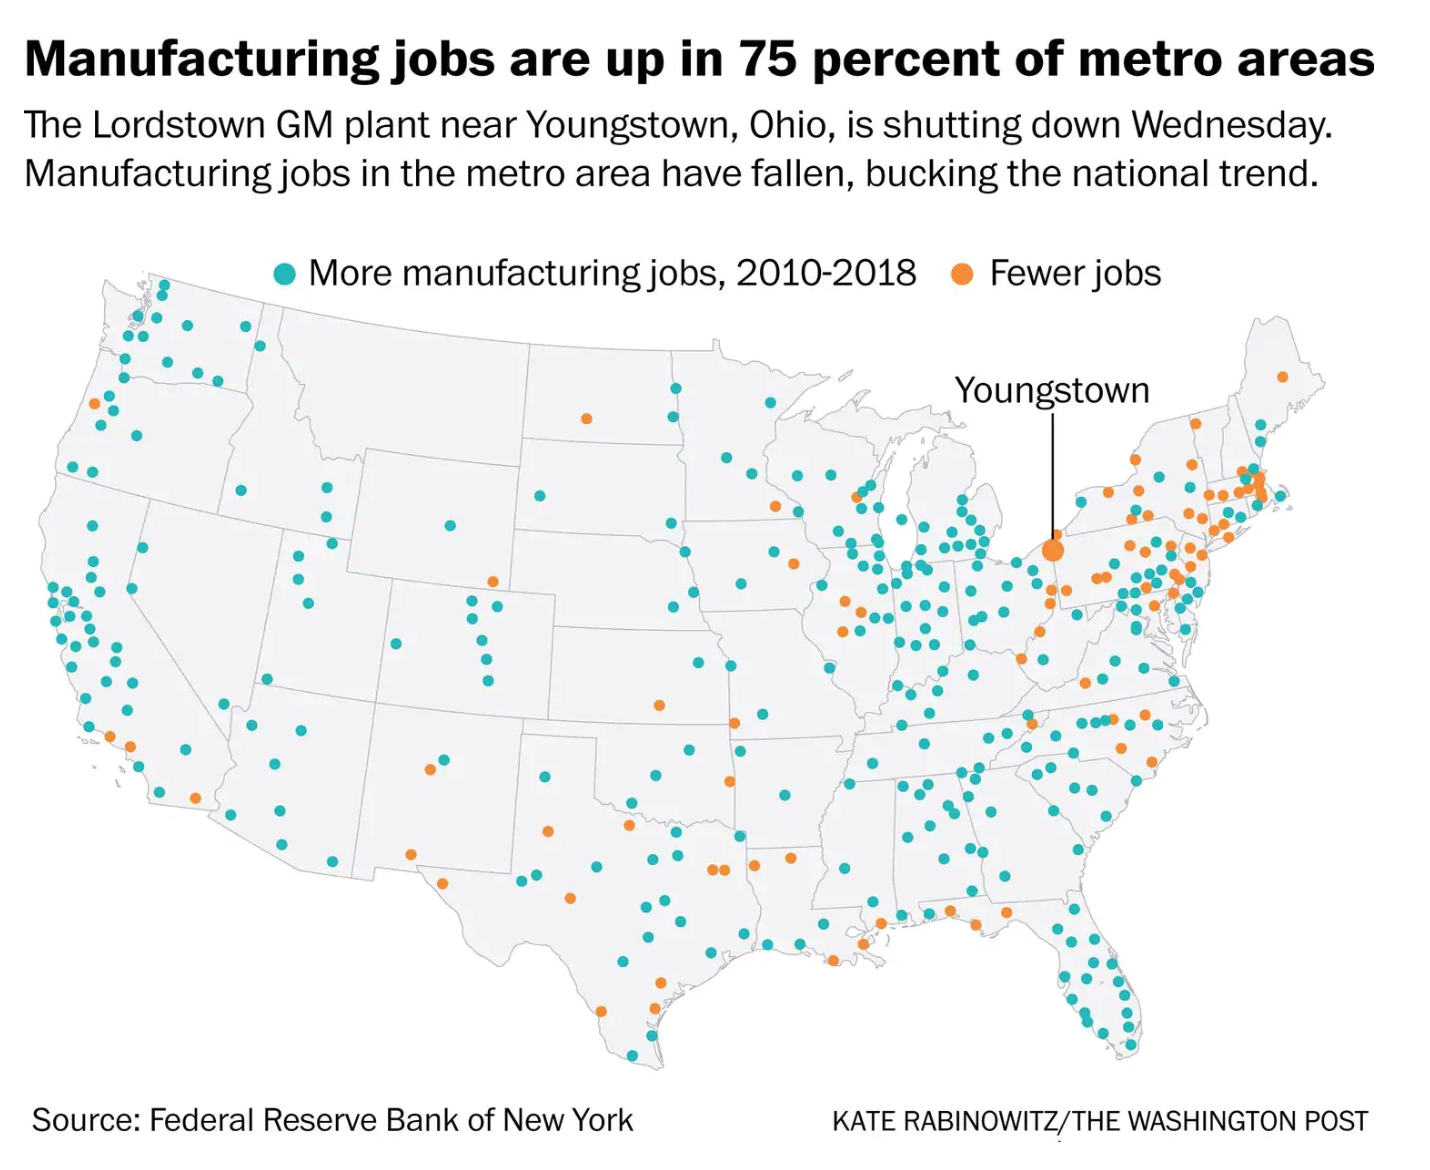 Quite a few locales in the Northeast haven't rebounded